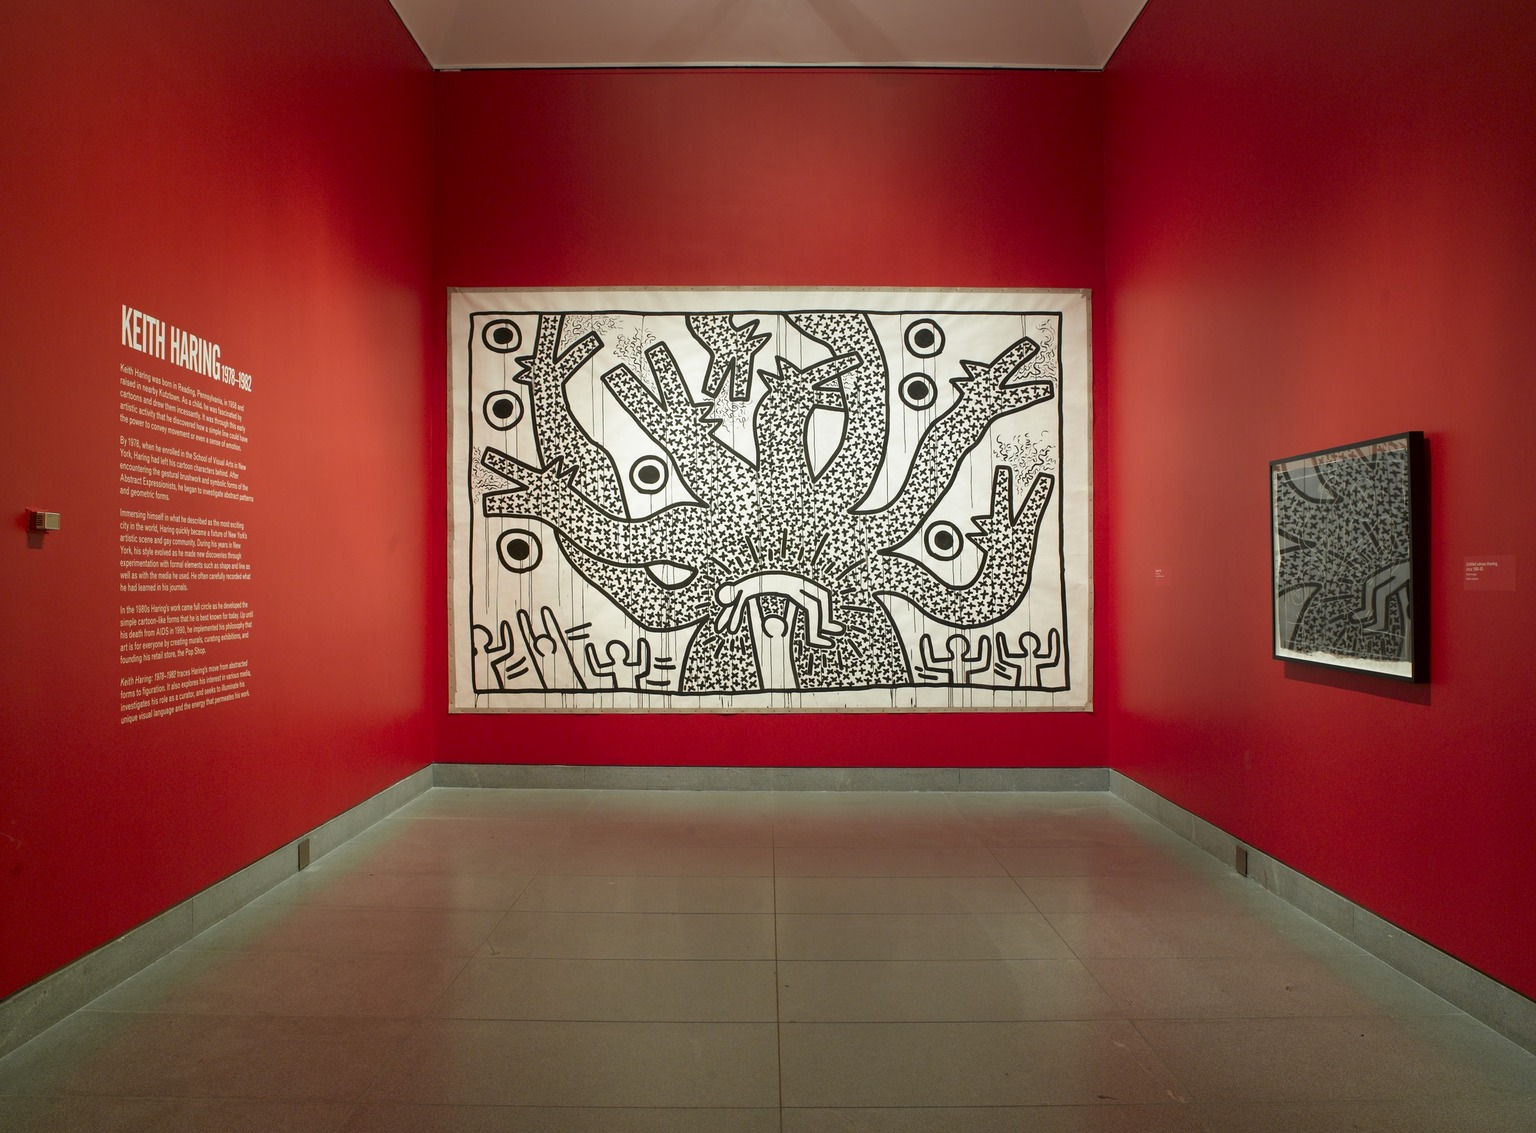 Brooklyn Museum: Keith Haring: 1978-1982